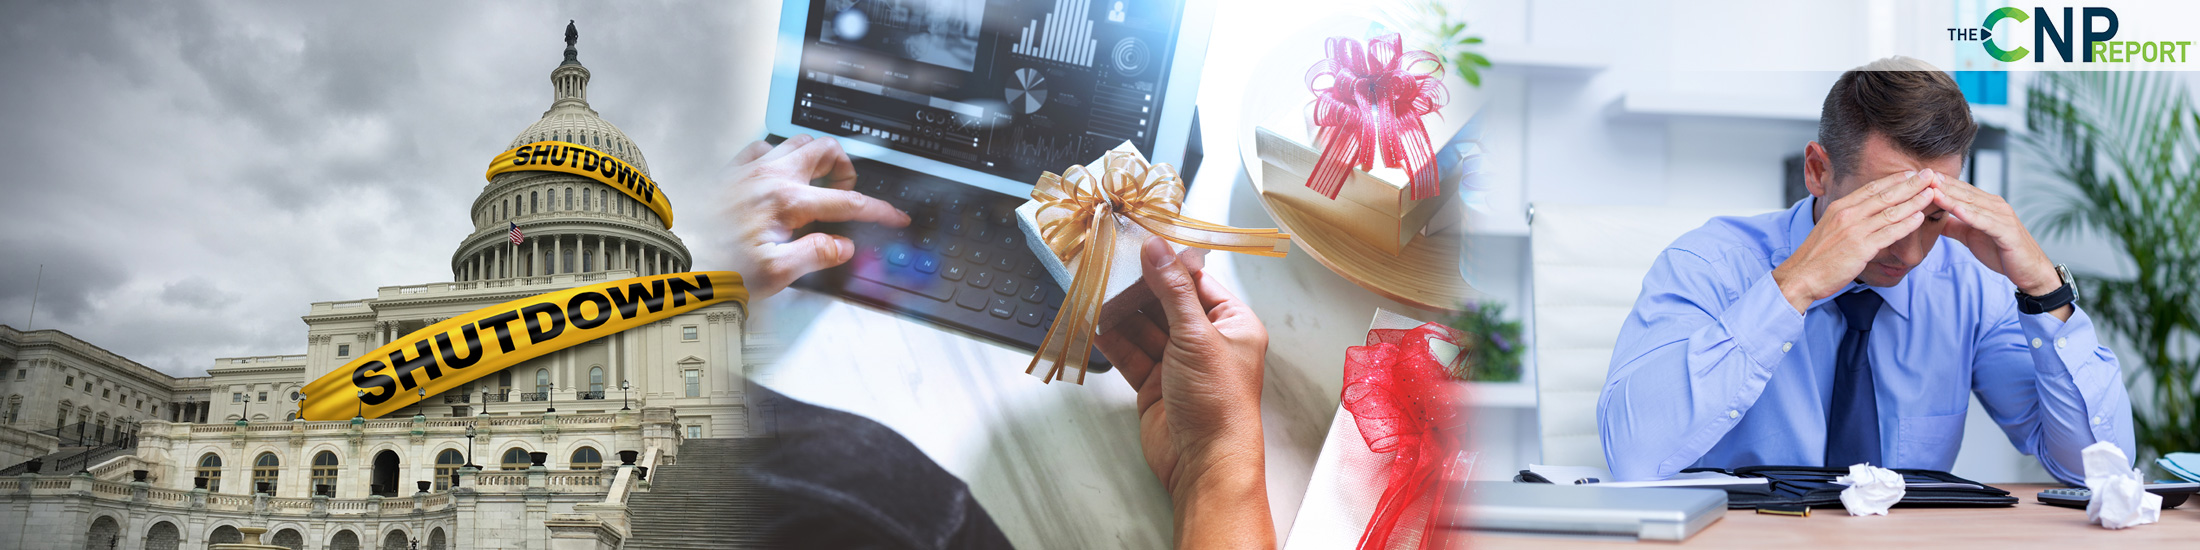 Lackluster 2018 Holiday Sales Numbers Surprise, But Online Still Growing Quickly: Report